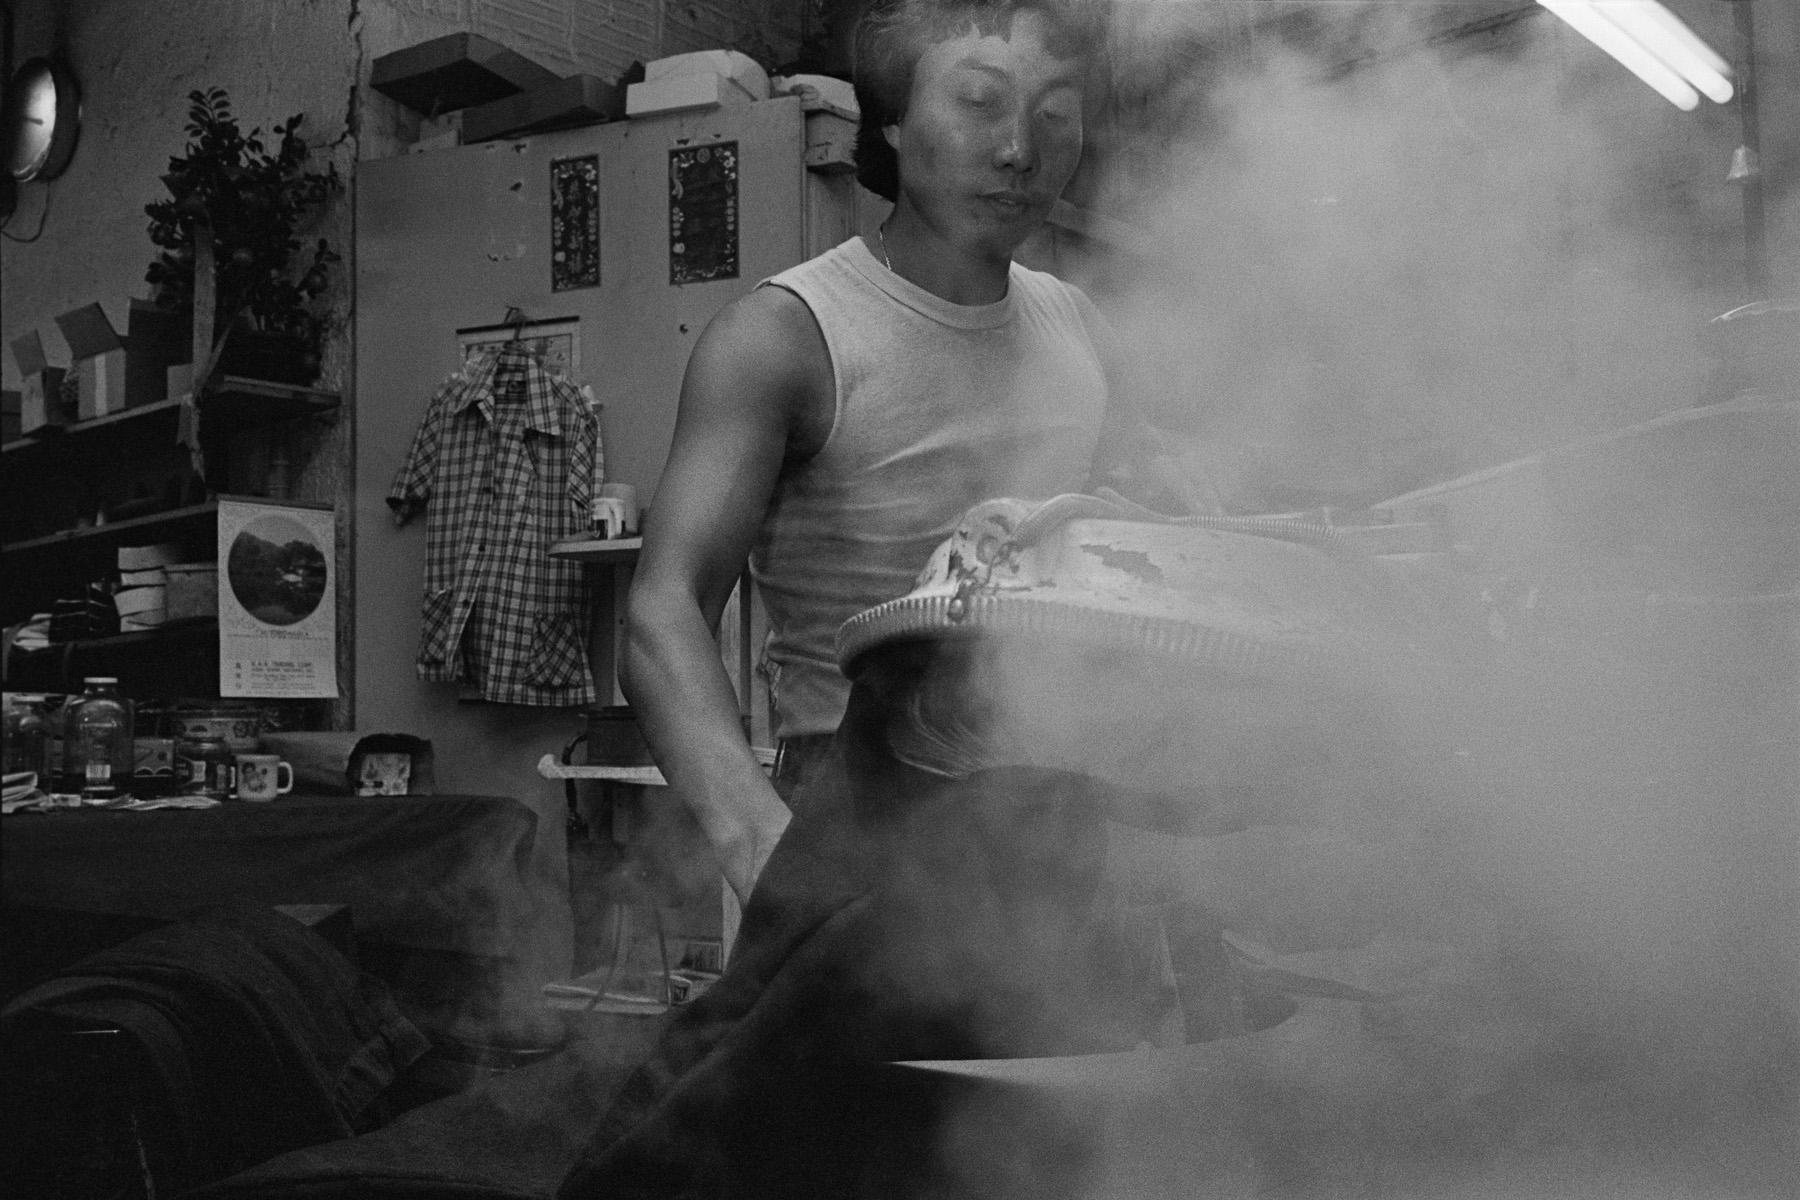 Mo, seen in a fog of steam,  presses a garment at Geolan Sportswear, a garment factory, 202 Centre St. New York Chinatown, 1983